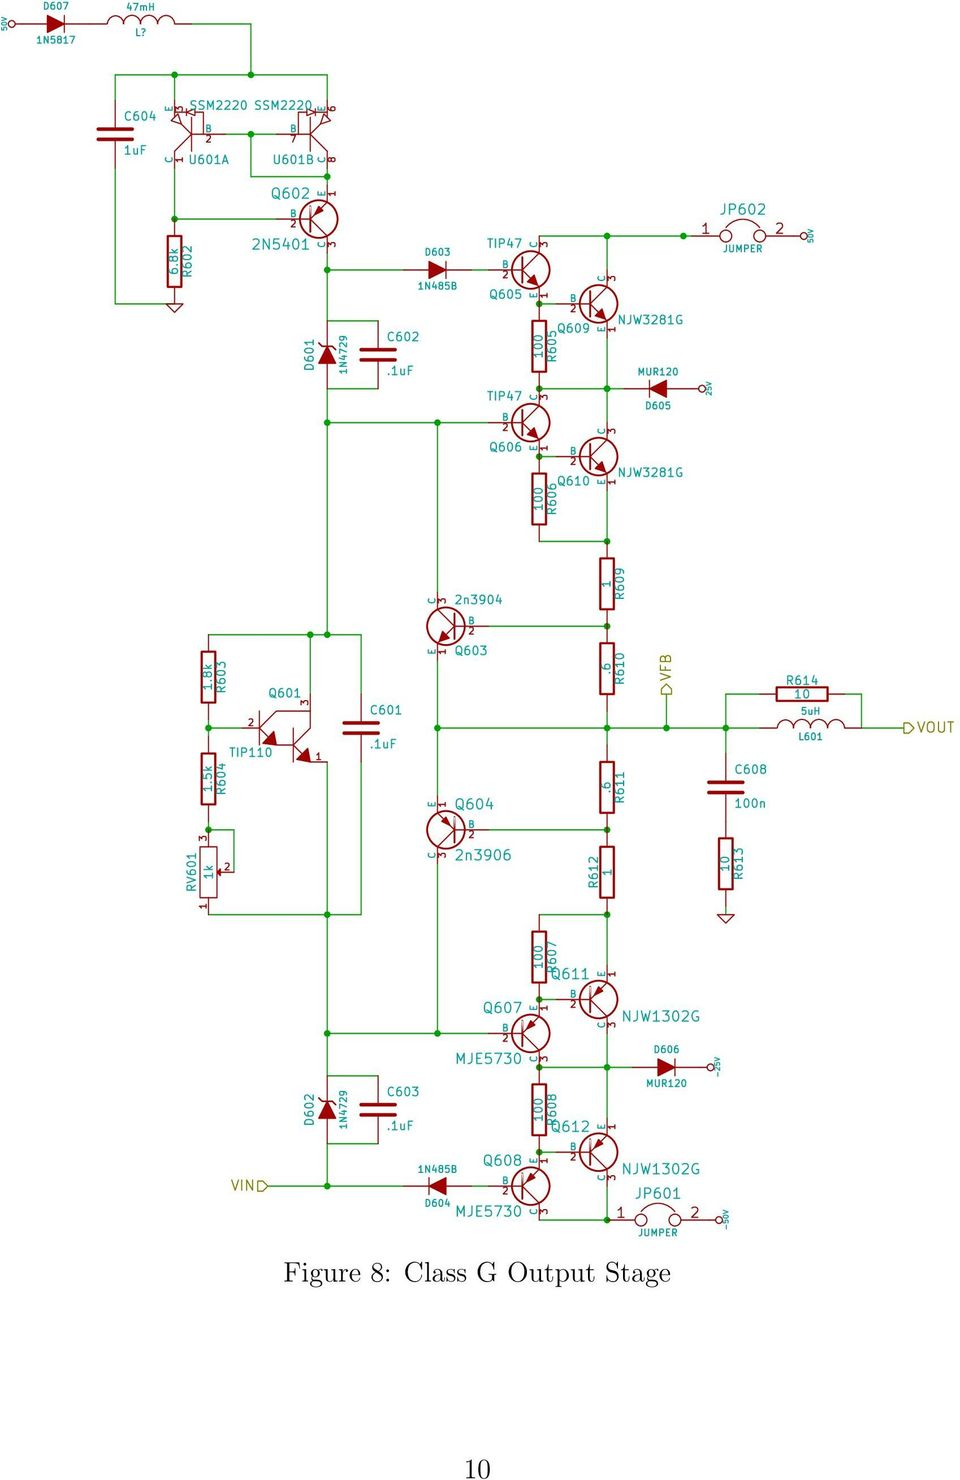 6101 Final Project Report Class G Audio Amplifier Pdf Emitter Preamp Schematic Using 1 Npn Transistor Circuit Drawing 11 Soundwesthostcom Were Very Helpful By The End Of Spring Break My Worked Pretty Well In Ltspice 42 Pcb Design This Is A Fairly Large And